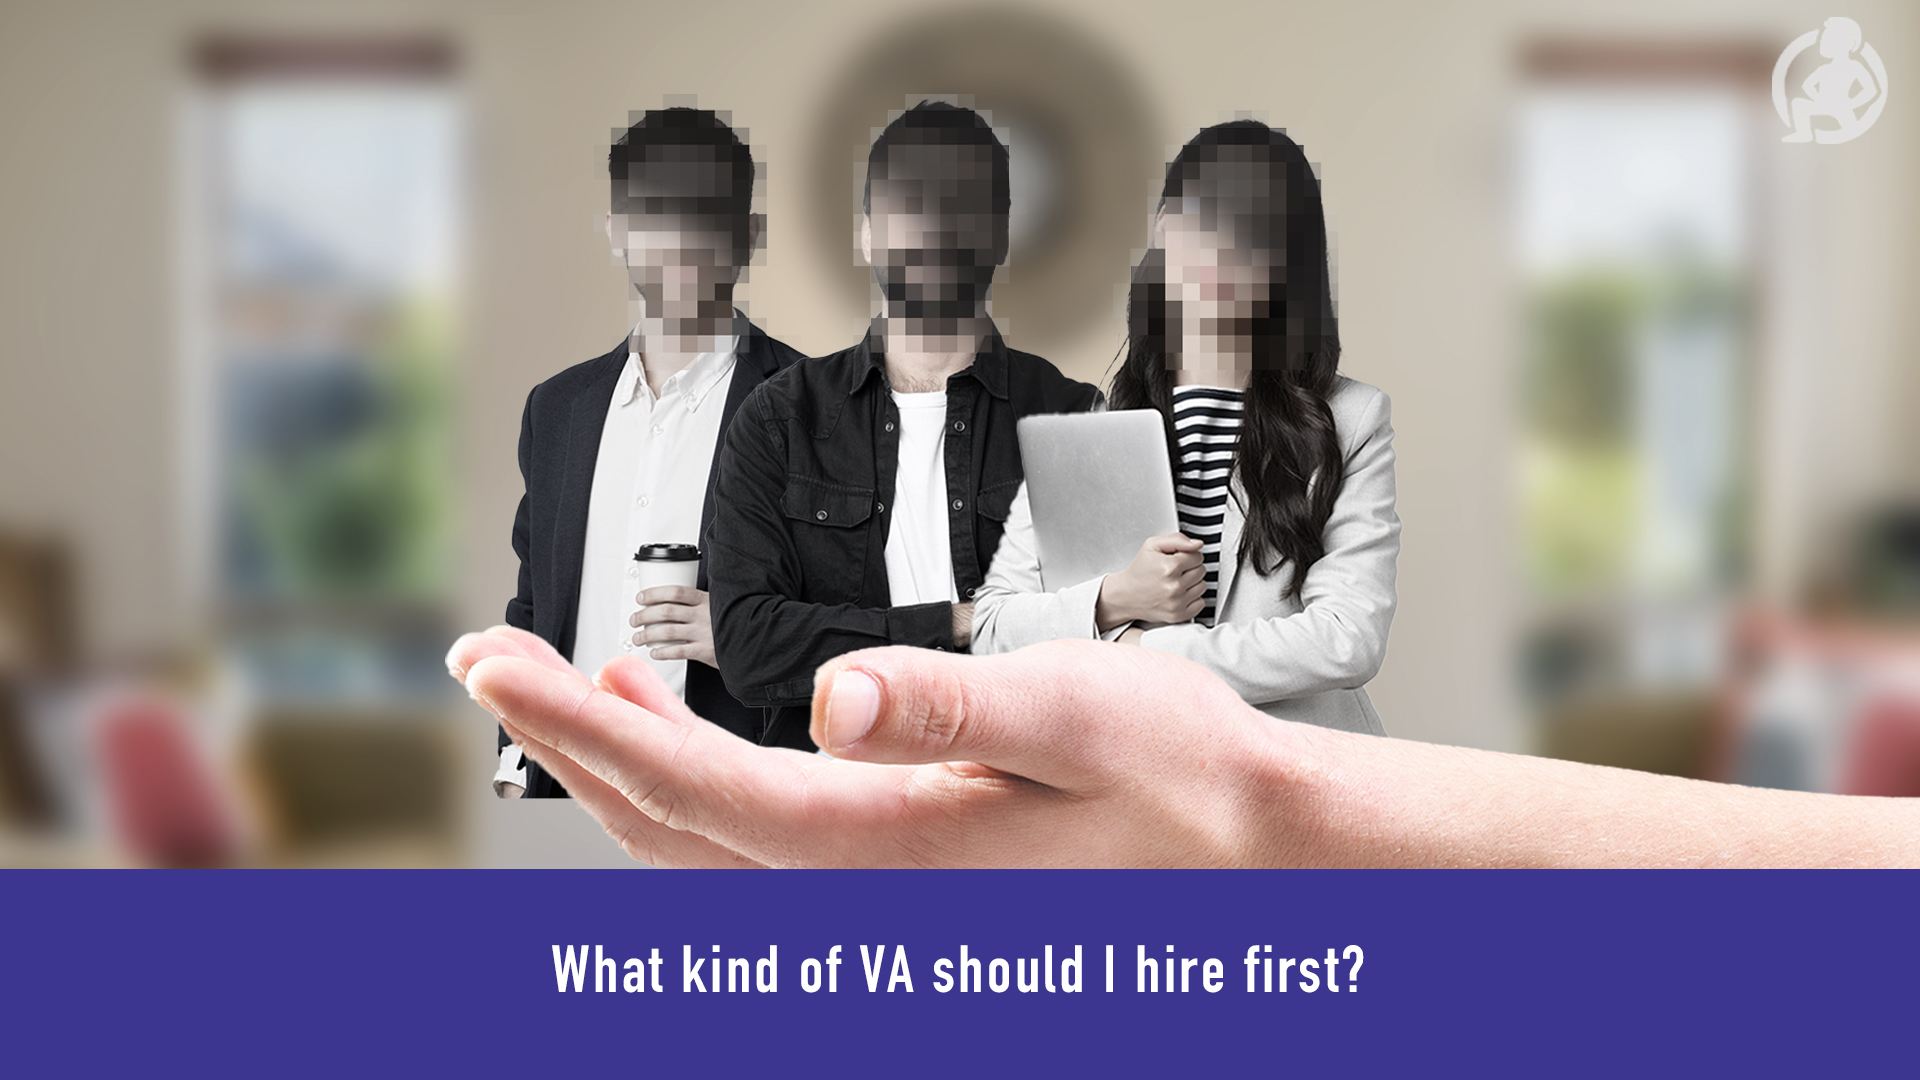 697 What kind of VA should I hire first